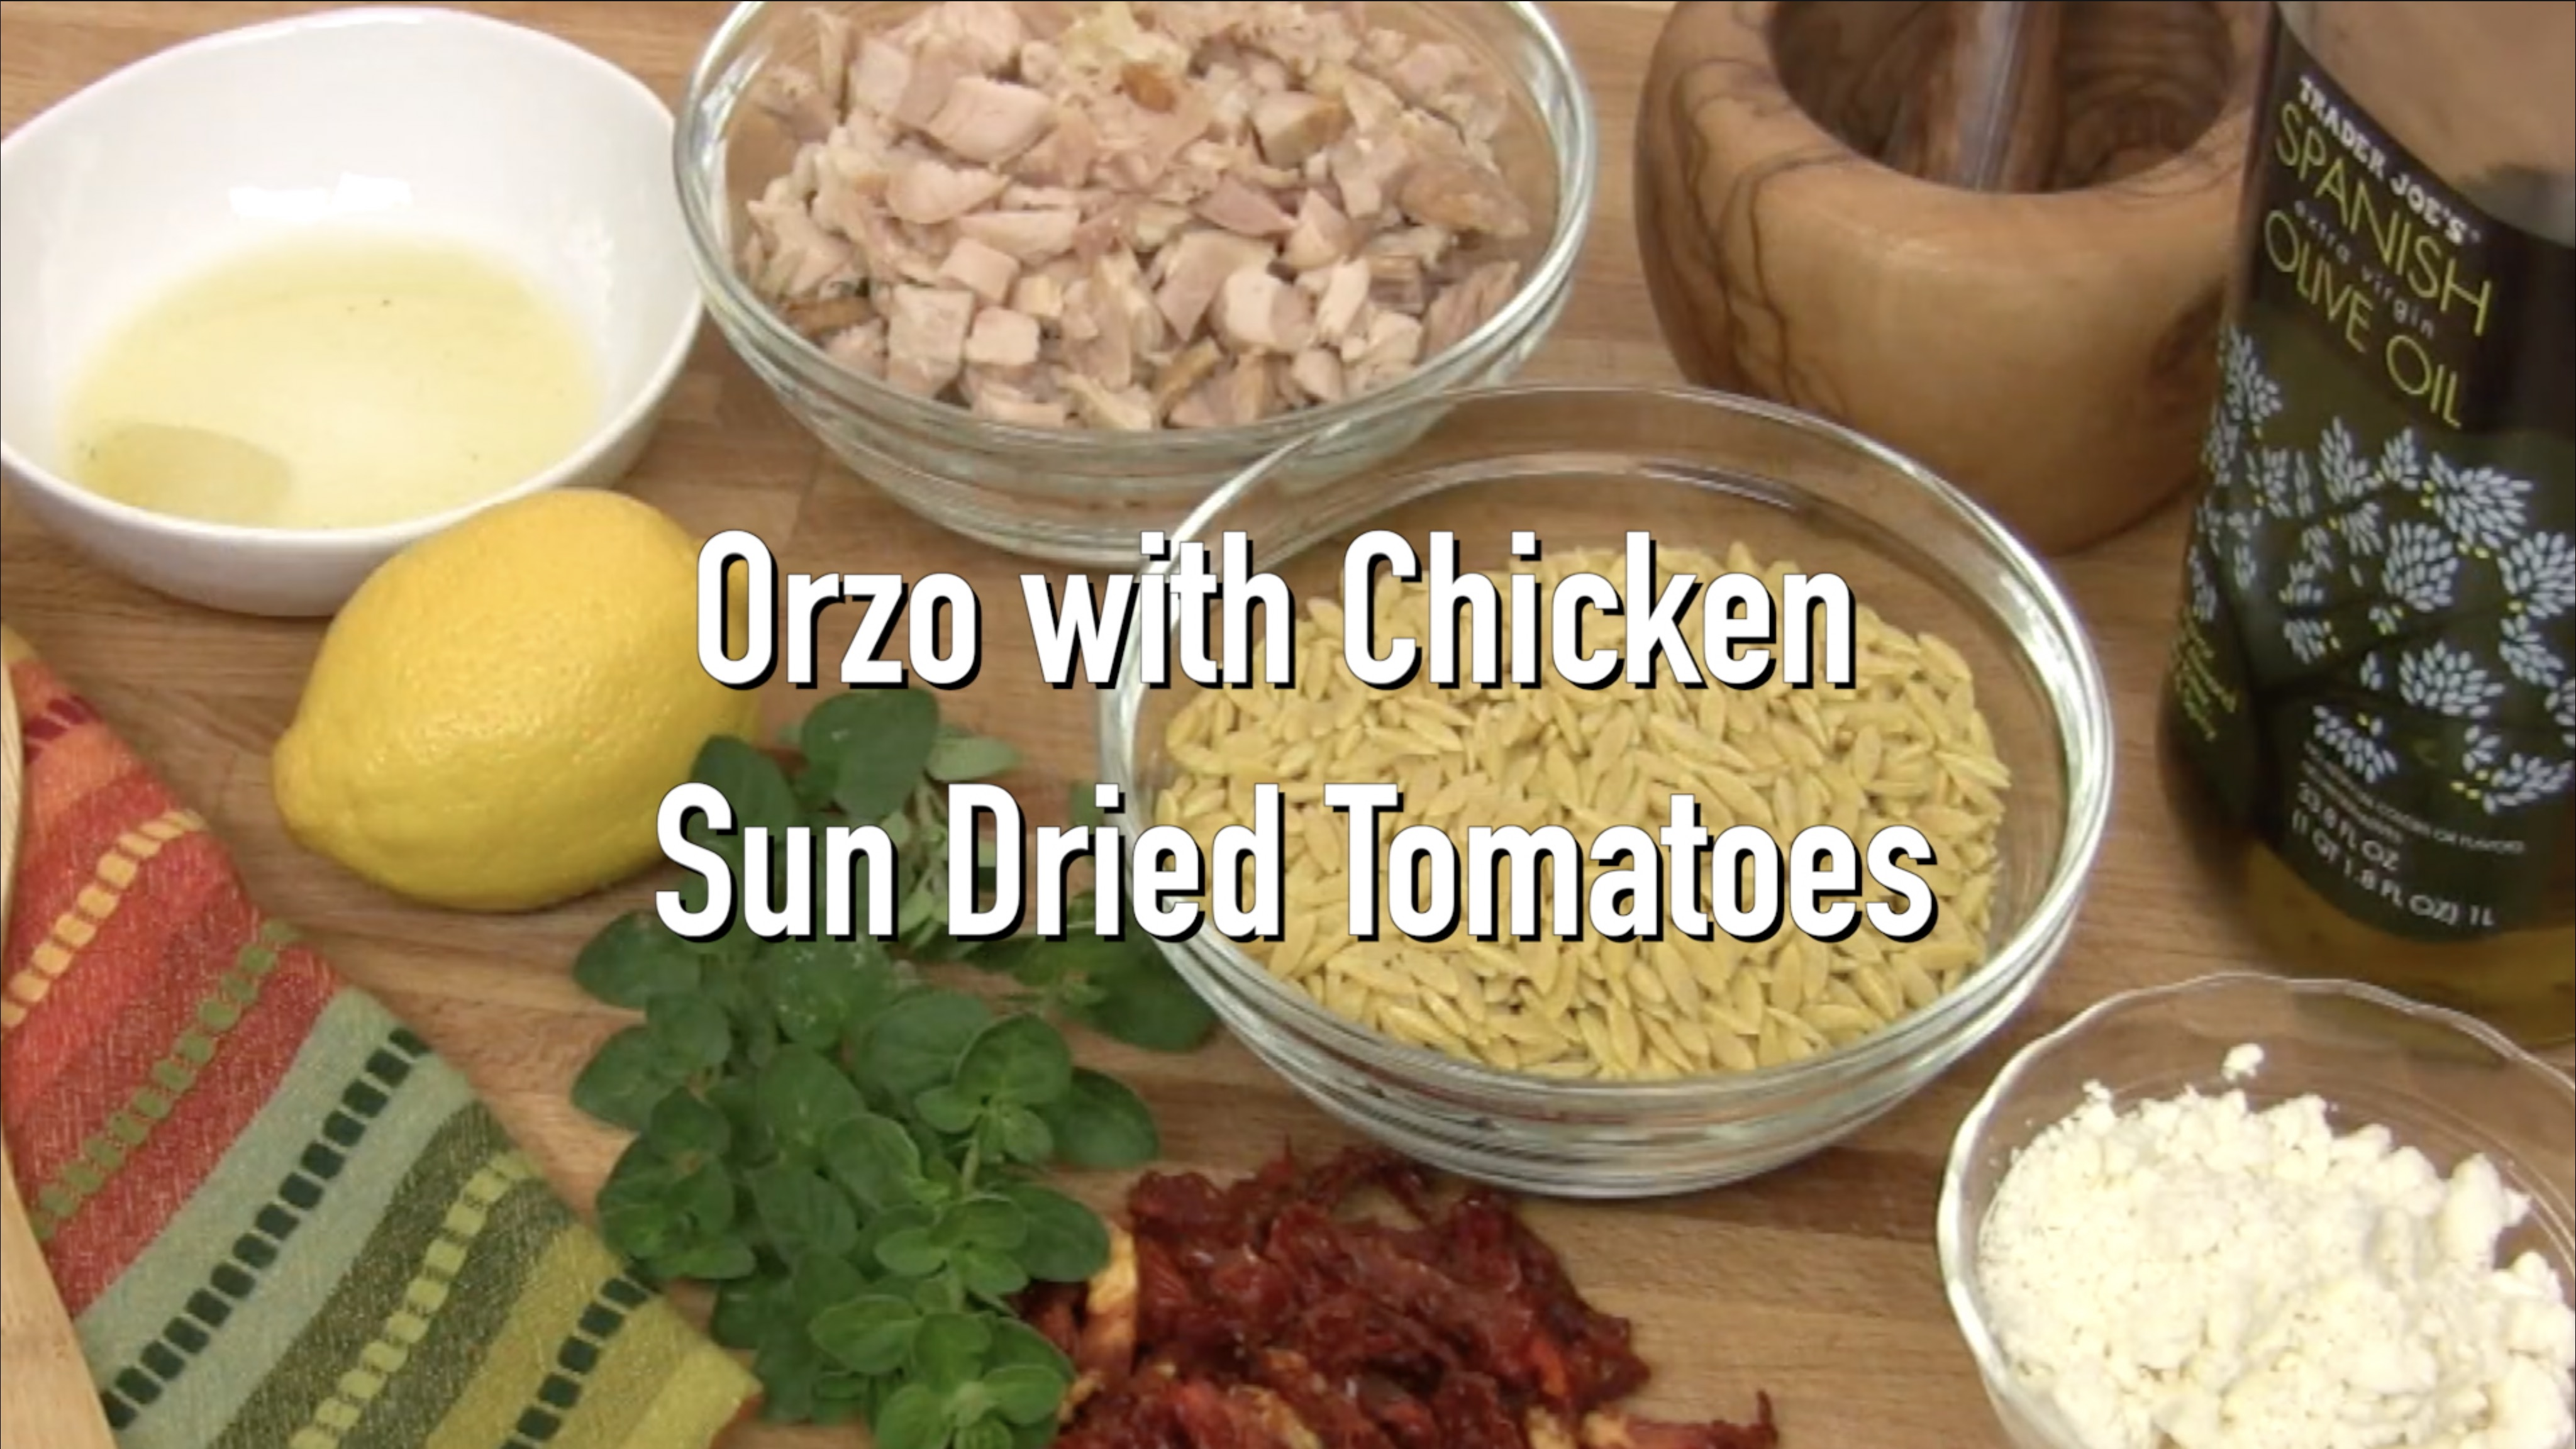 Orzo with Chicken and Sun Dried Tomatoes 1